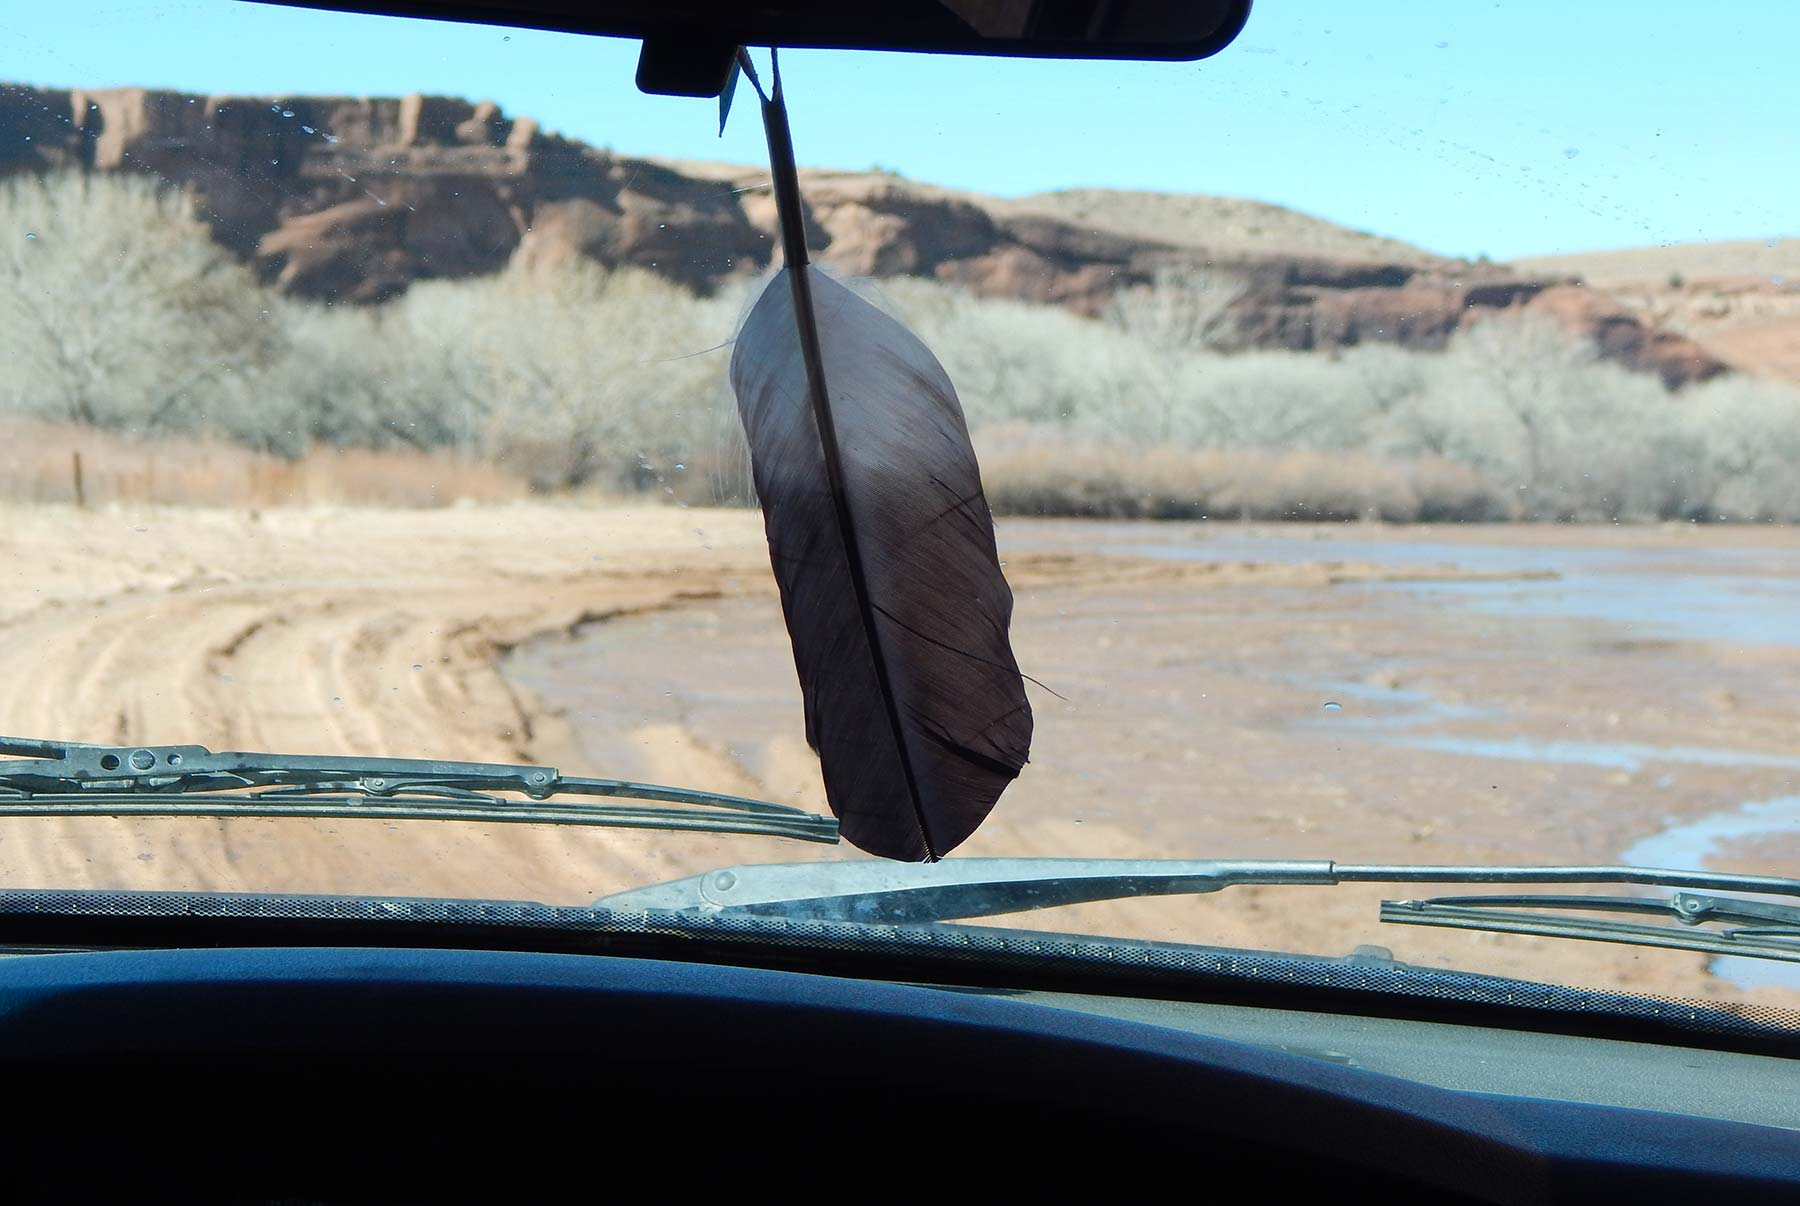 A feather, here hanging from the rear-view mirror of an off-road truck traversing Canyon de Chelly near Chindle in the Navajo Nation, is one of the inspirations for the Southwest Collection of Arizona turquoise, coral and Old World cast 925 silver jewelry by Kamila Kubelik.